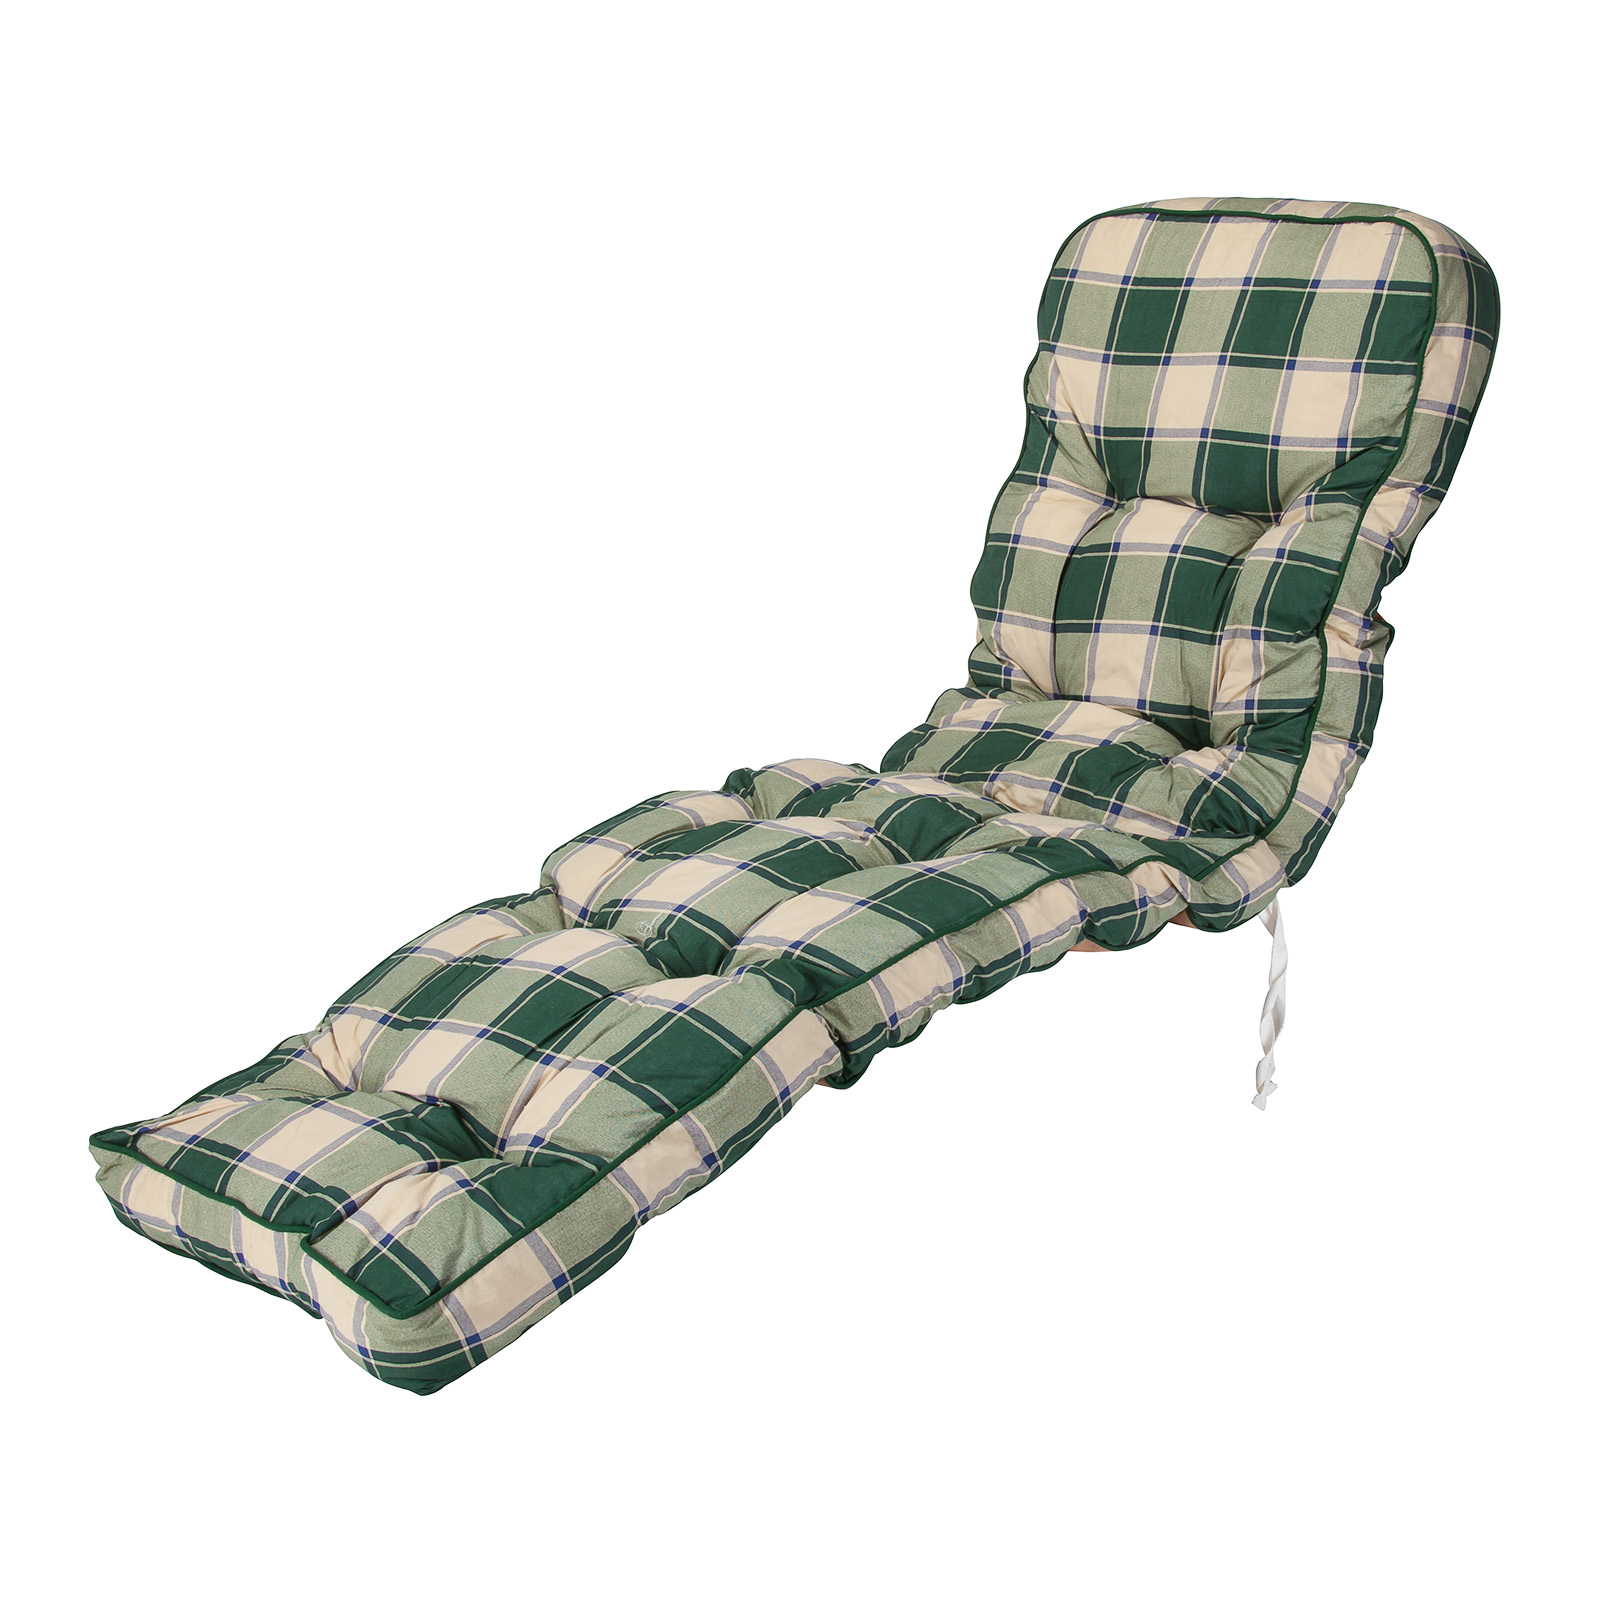 Replacement Classic Outdoor Garden Relaxer Chair Cushion Choice Of Prints